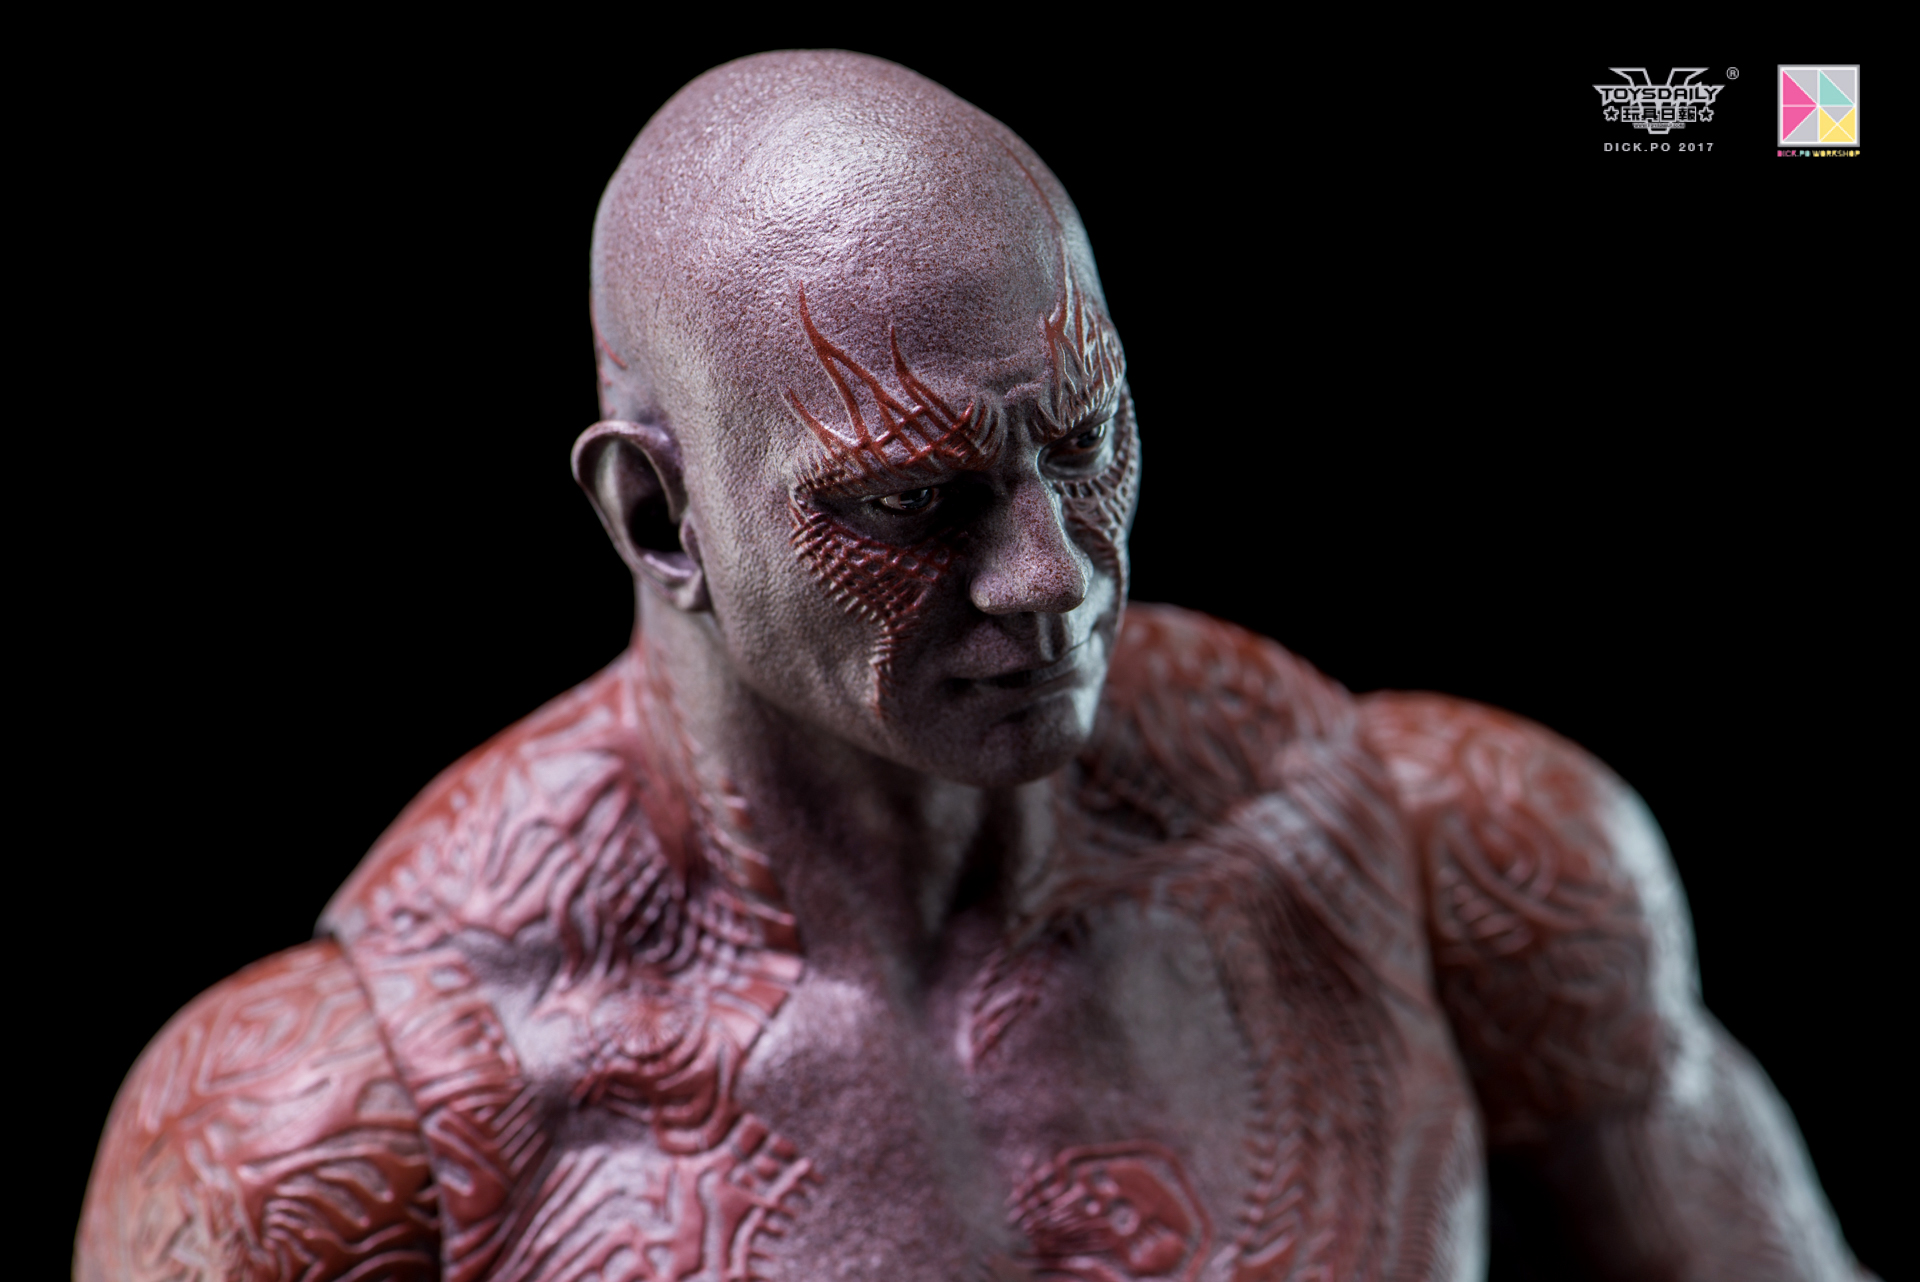 toysdaily_dick.po_Hottoys_DARX-23.jpg